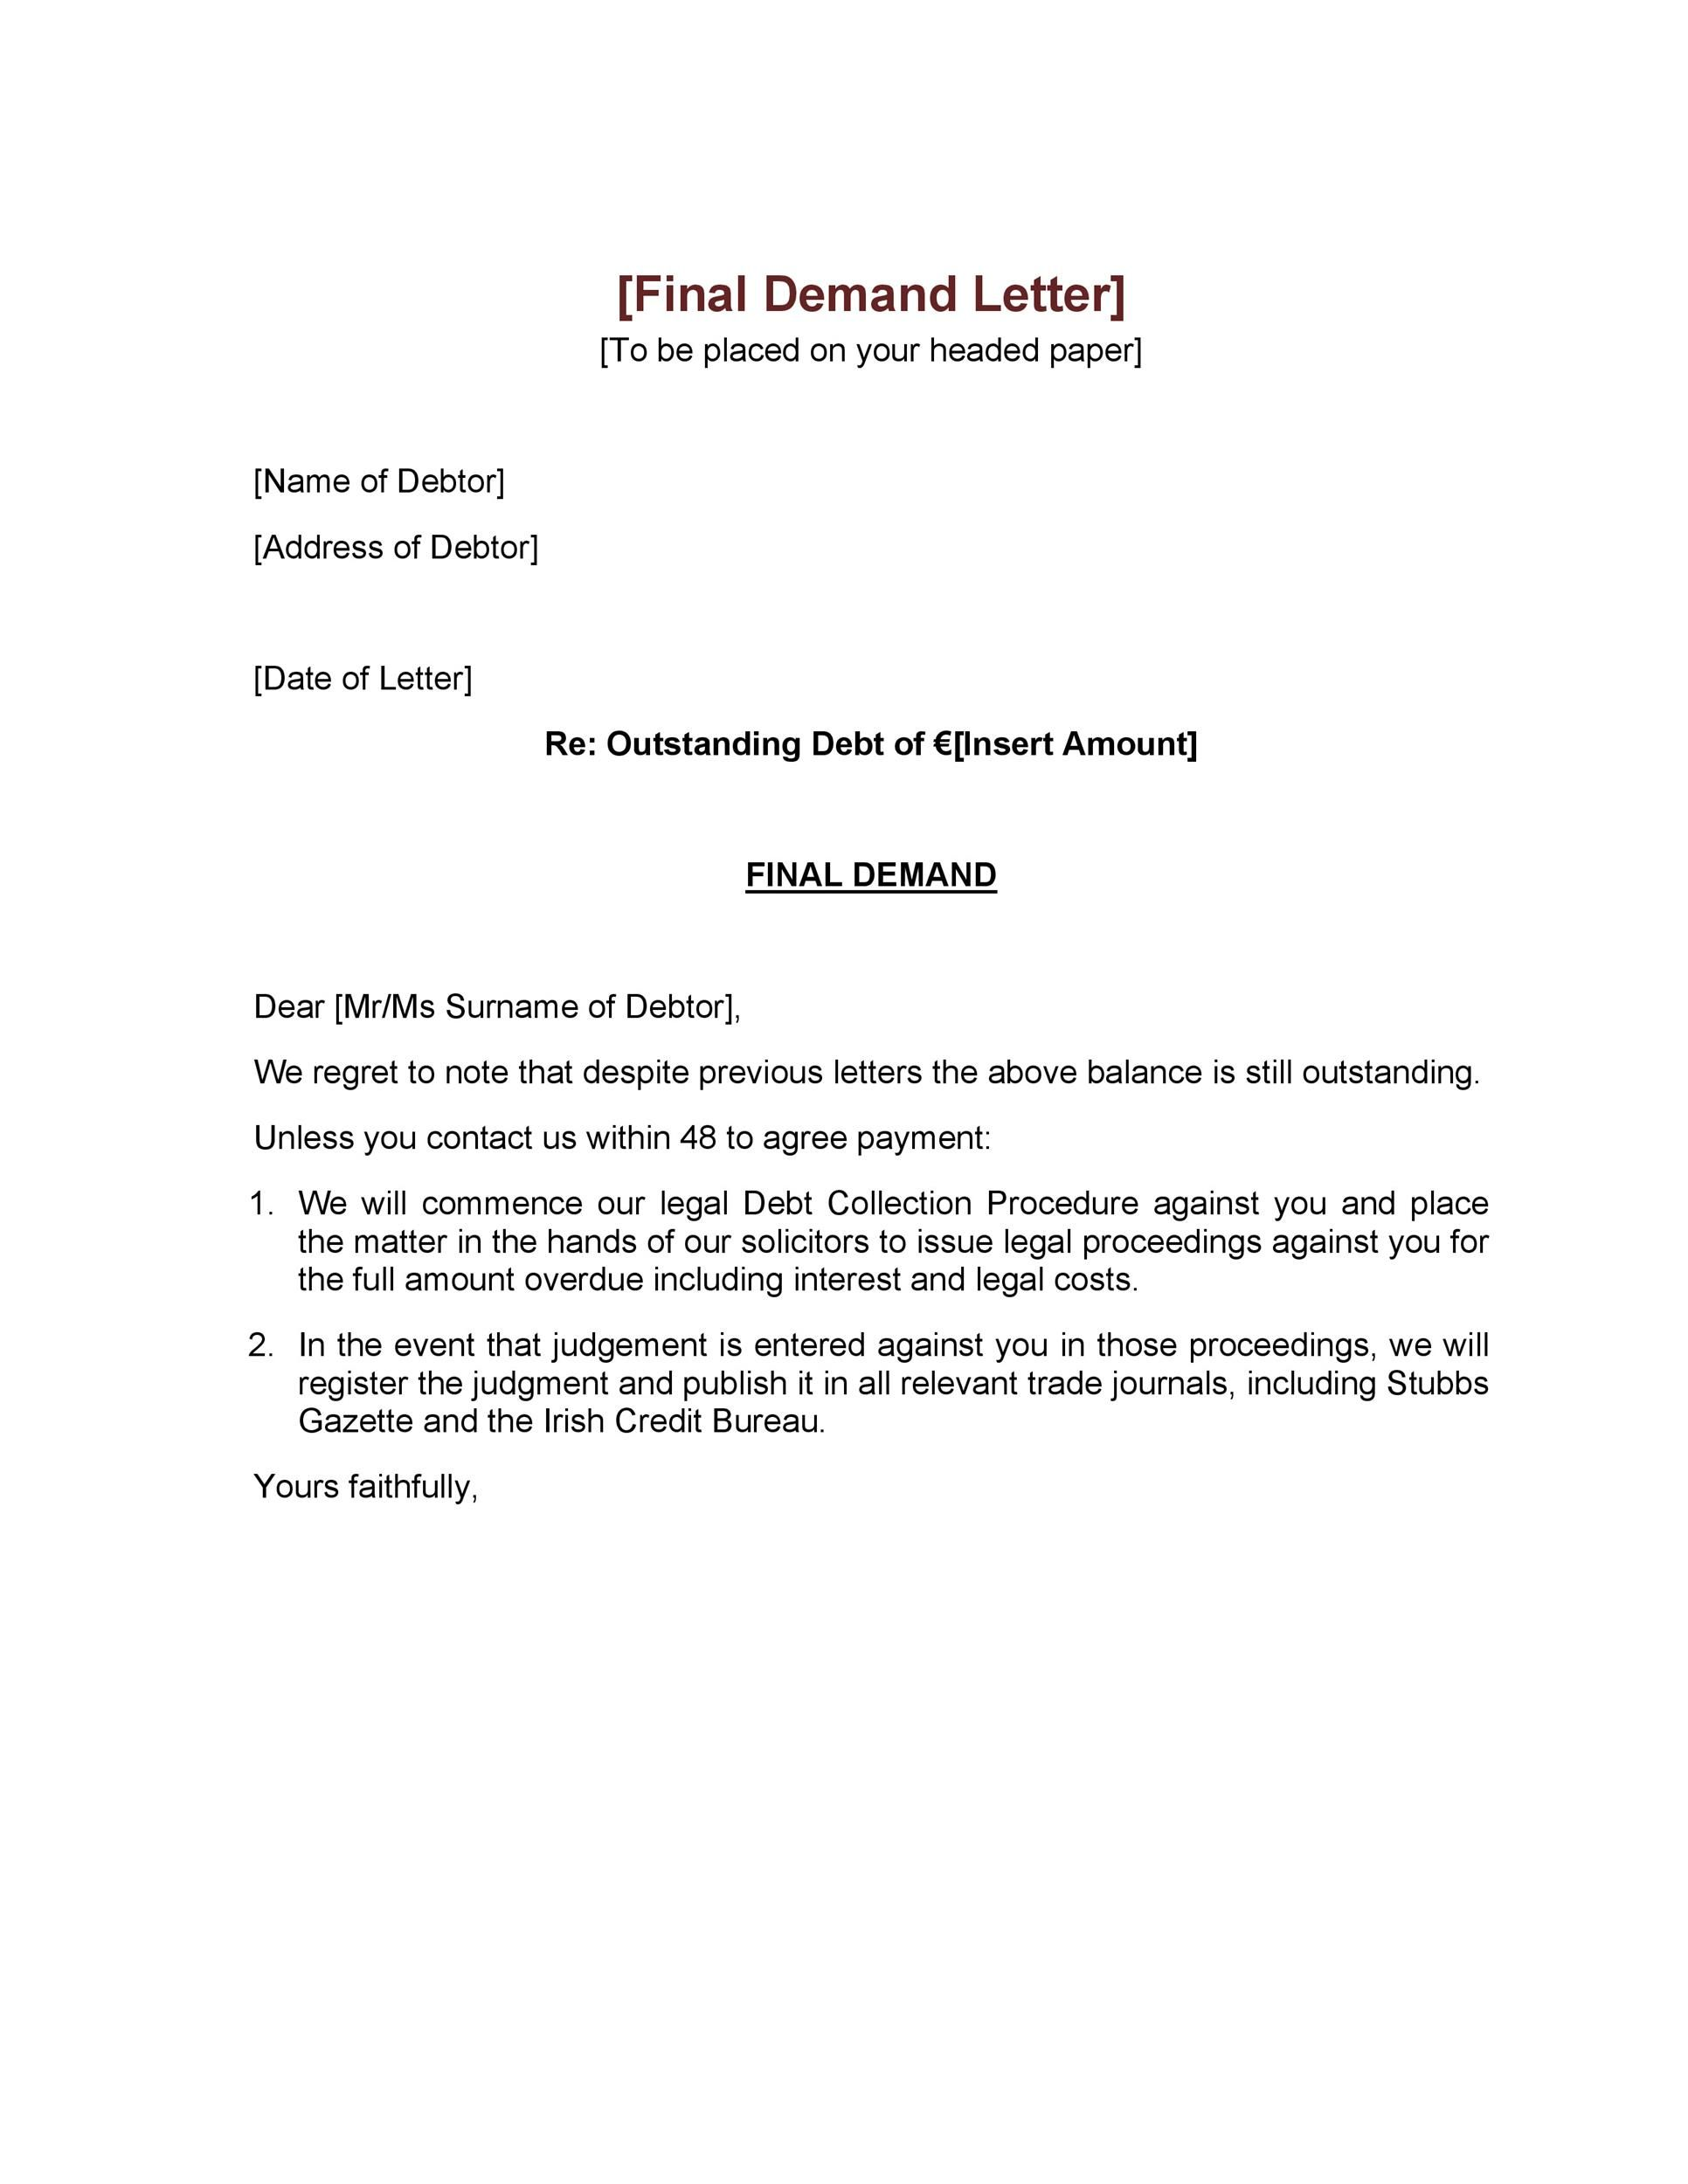 Legal Archives Templatelab In 2021 Letter Template Word Letter Templates Free Letter Templates Defamation of character letter template